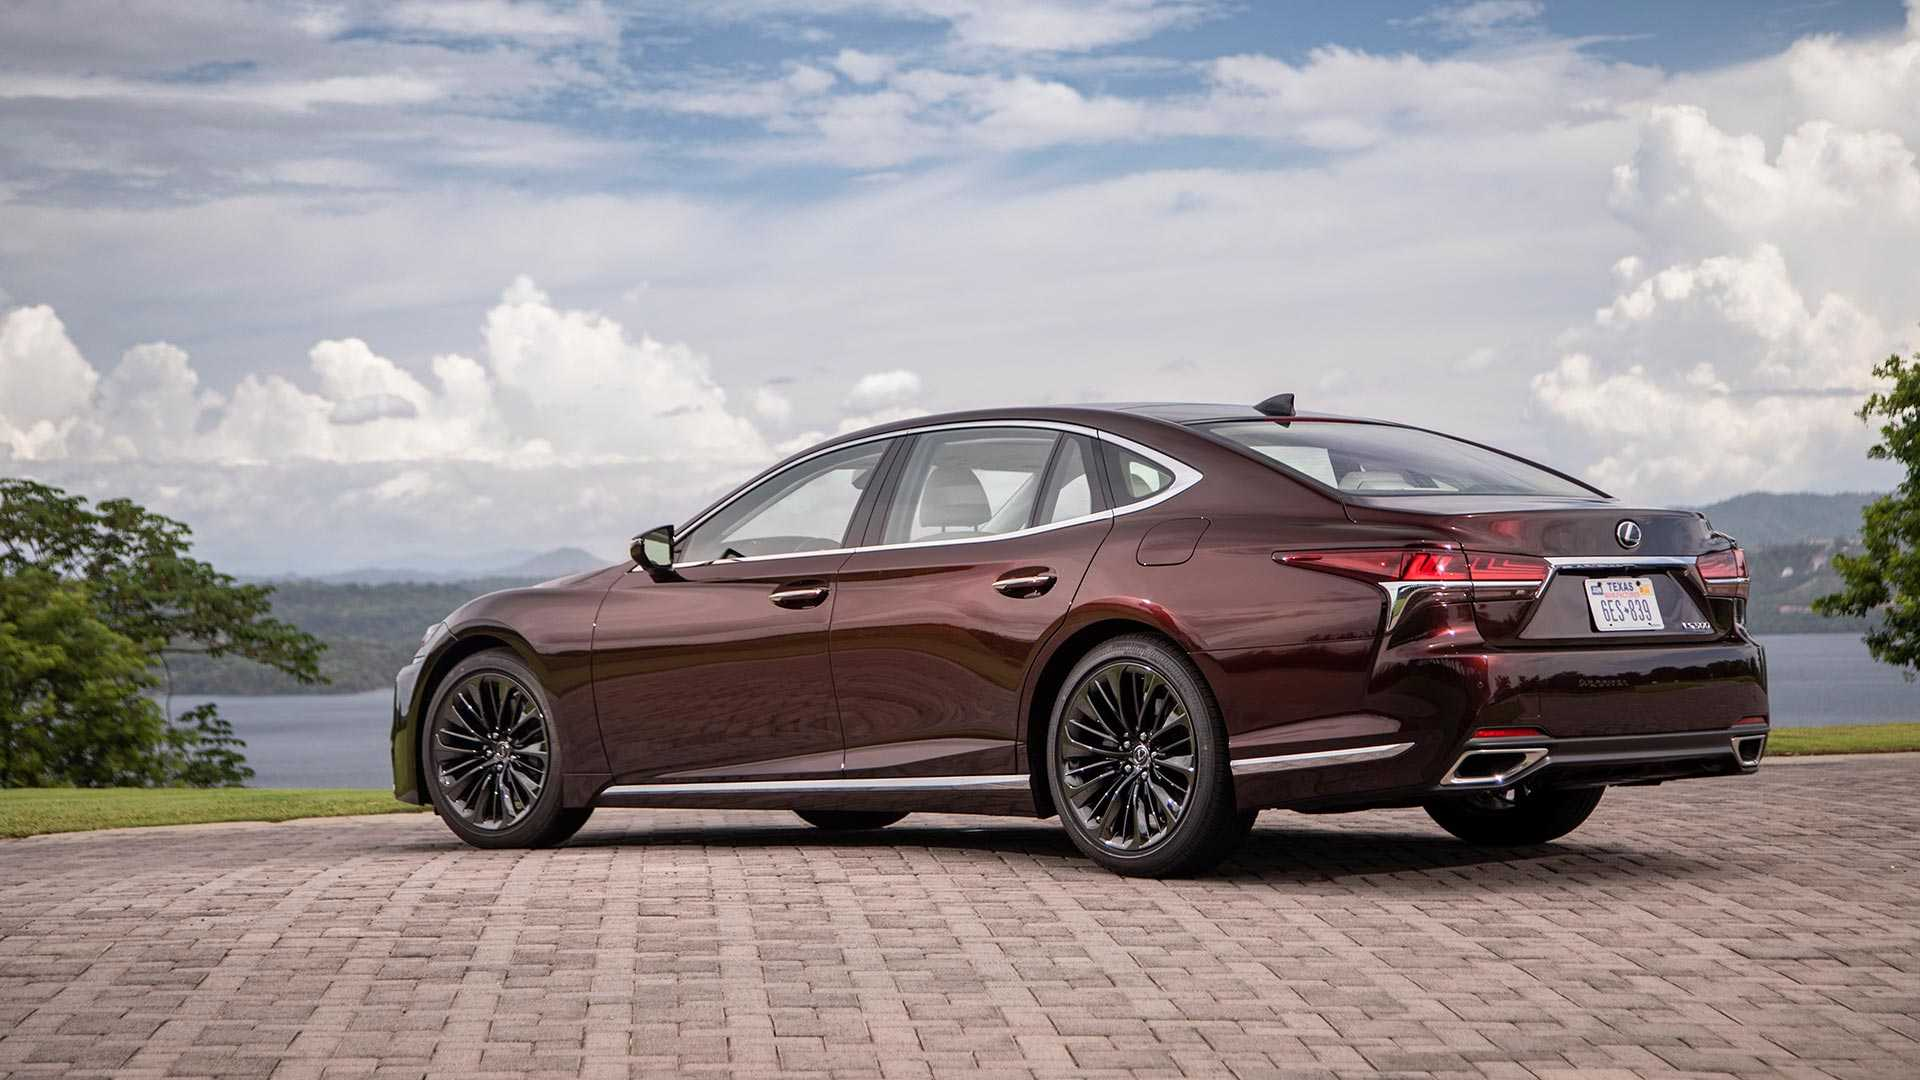 2020 Lexus LS 500 Inspiration Series Rear Three-Quarter Wallpapers (4)